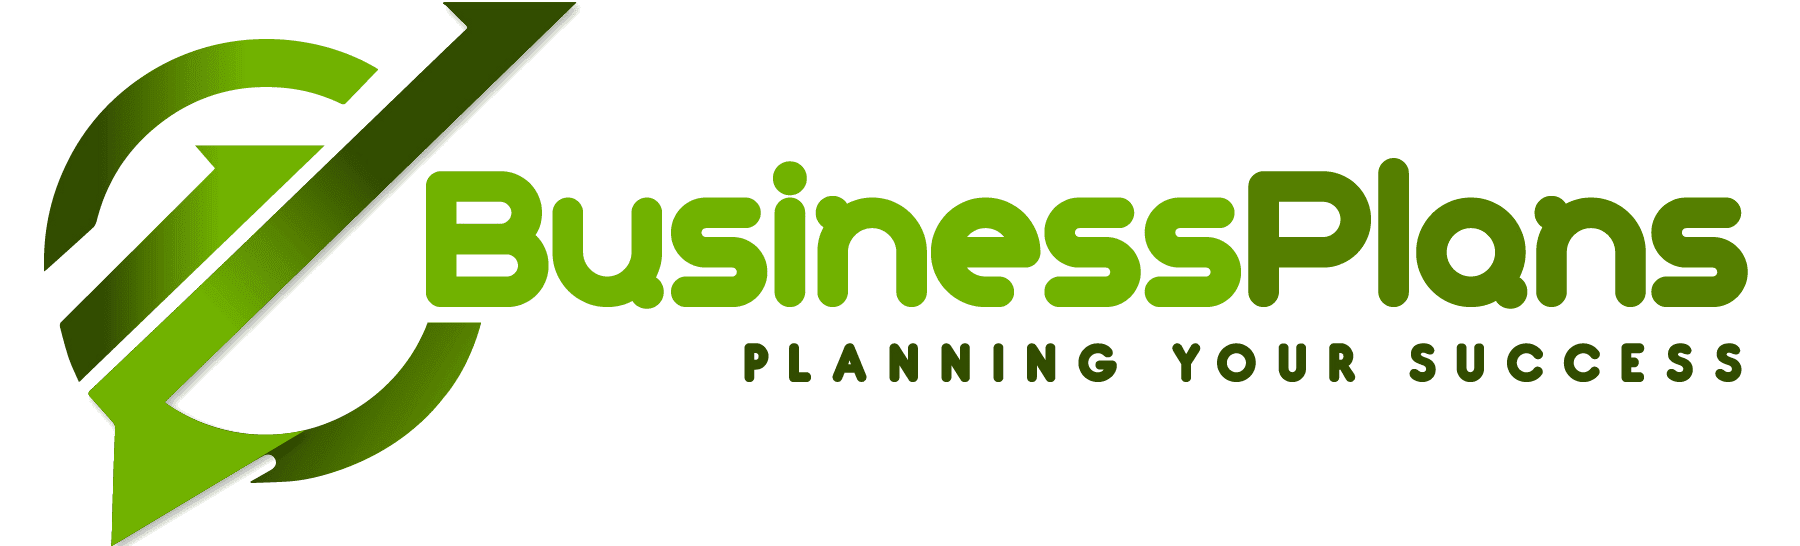 Best Business Plan Writing Company   Business Plans Professional  Best Business Plan Writing Company   Business Plans Professional Business  Plan Writers